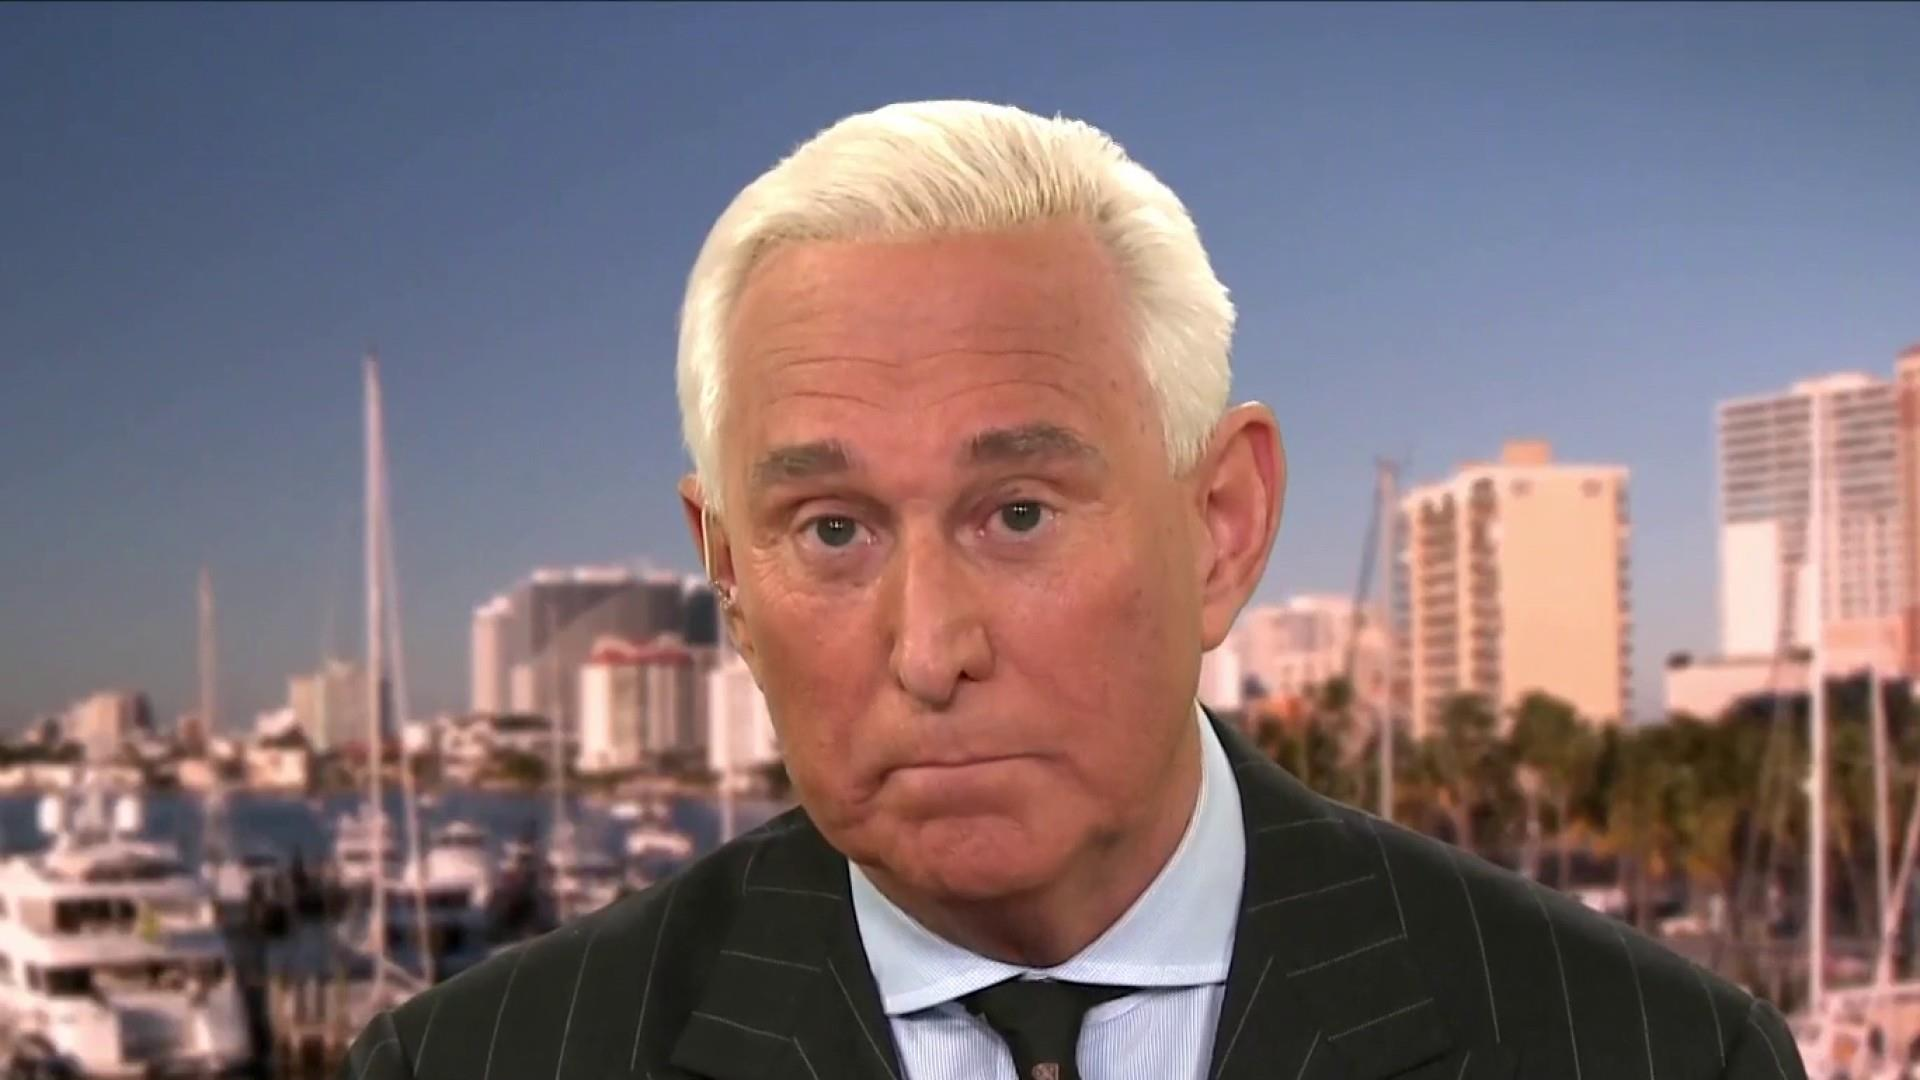 Former Trump Adviser Roger Stone Arrested In Russia Mueller Investigation